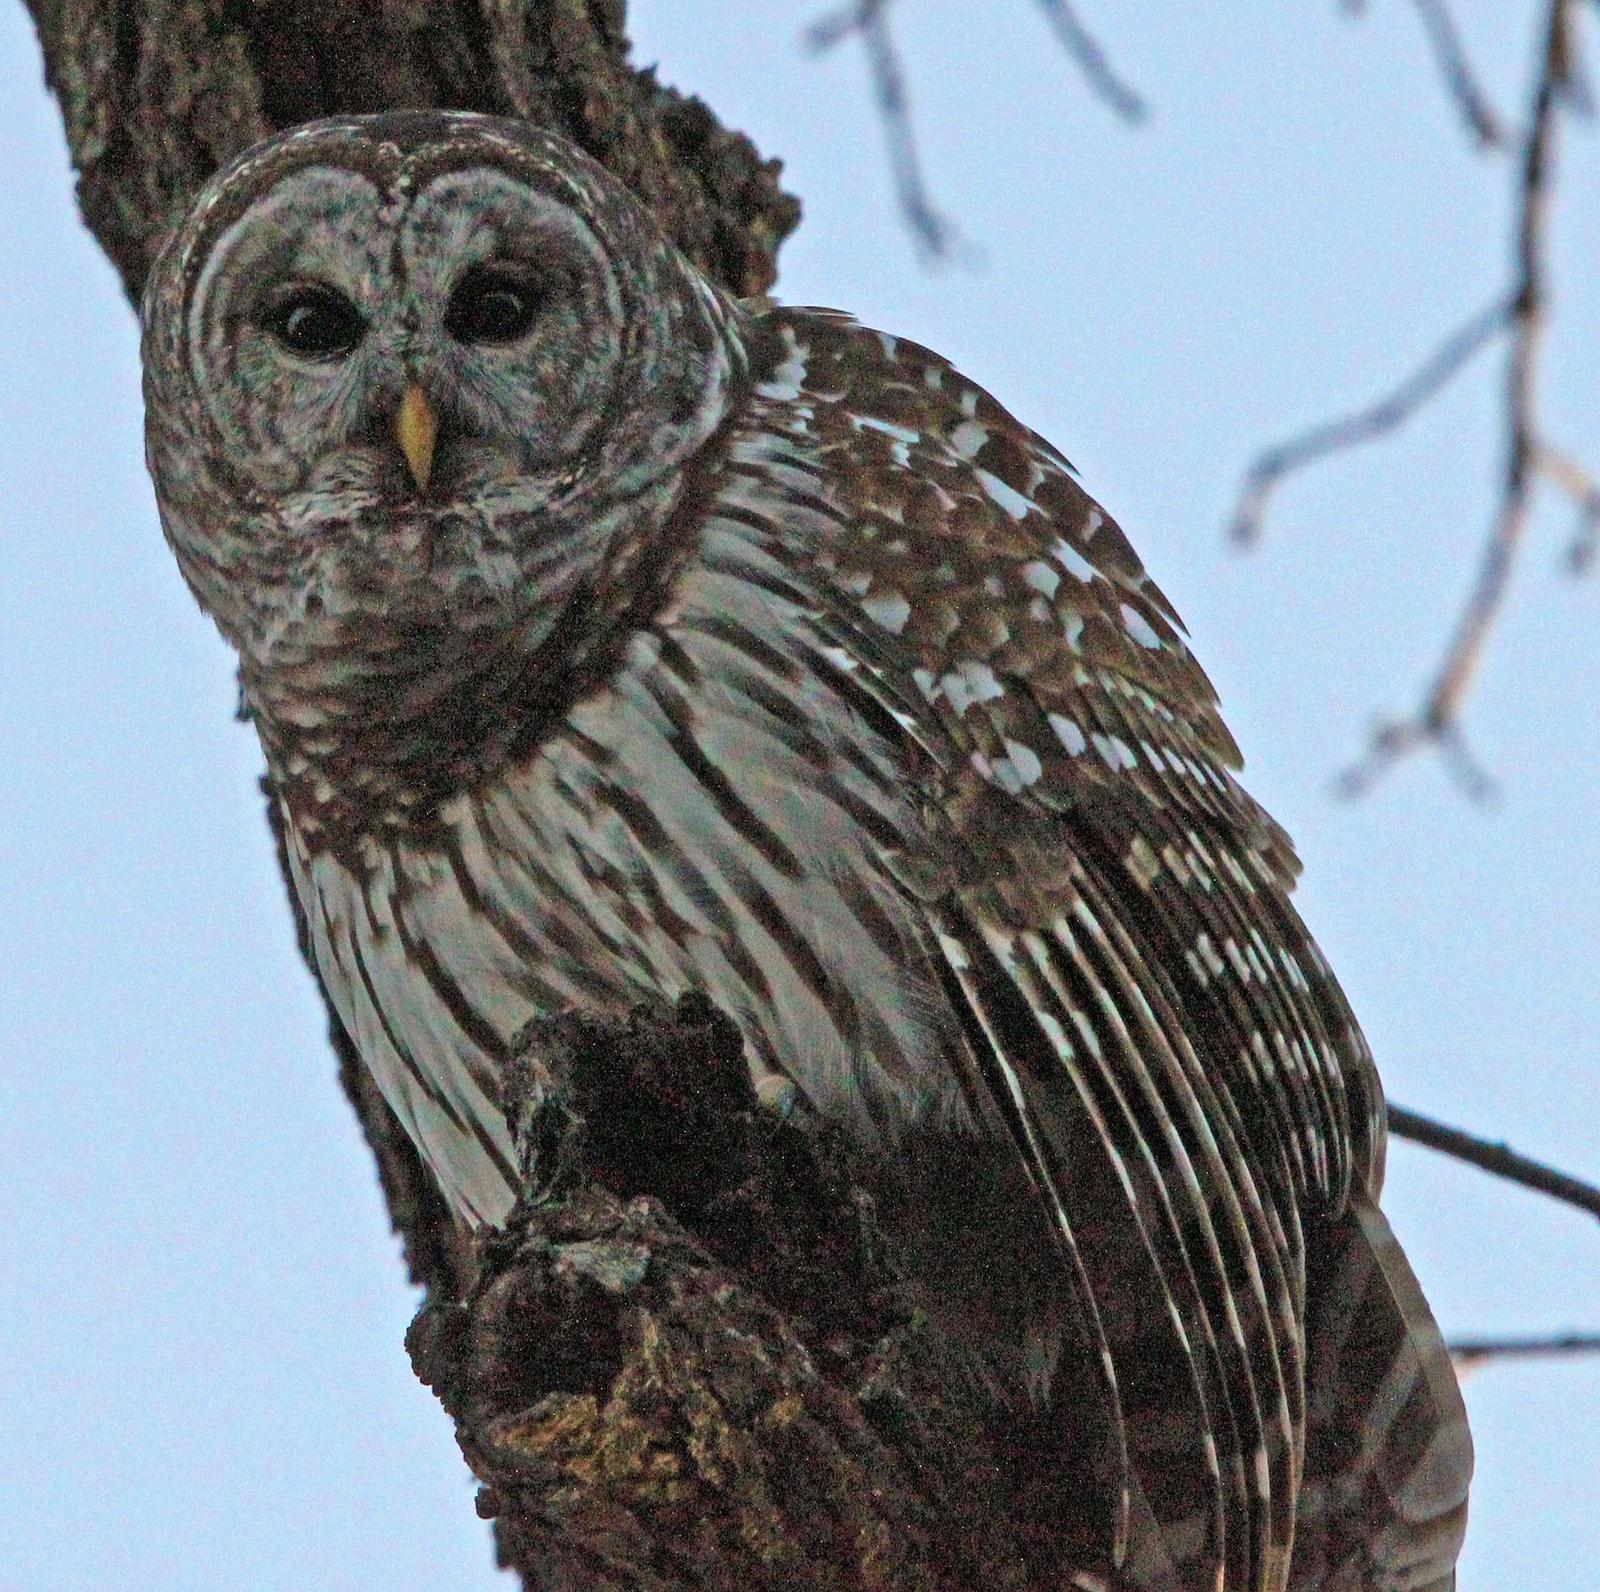 Barred Owl Photo by Tom Gannon